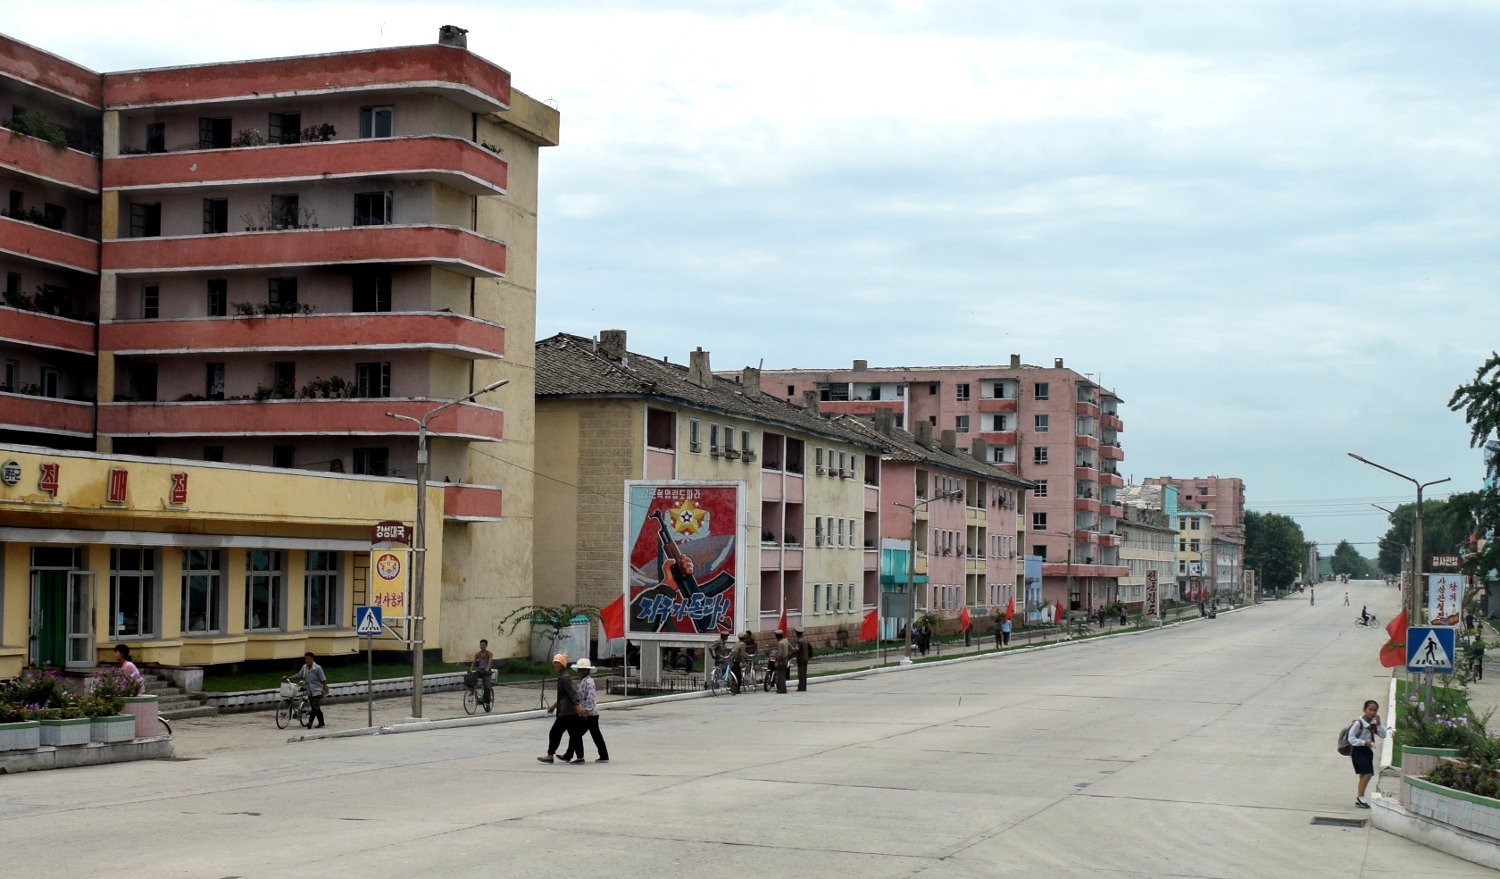 Trip to the east coast in North Korea (DPRK)